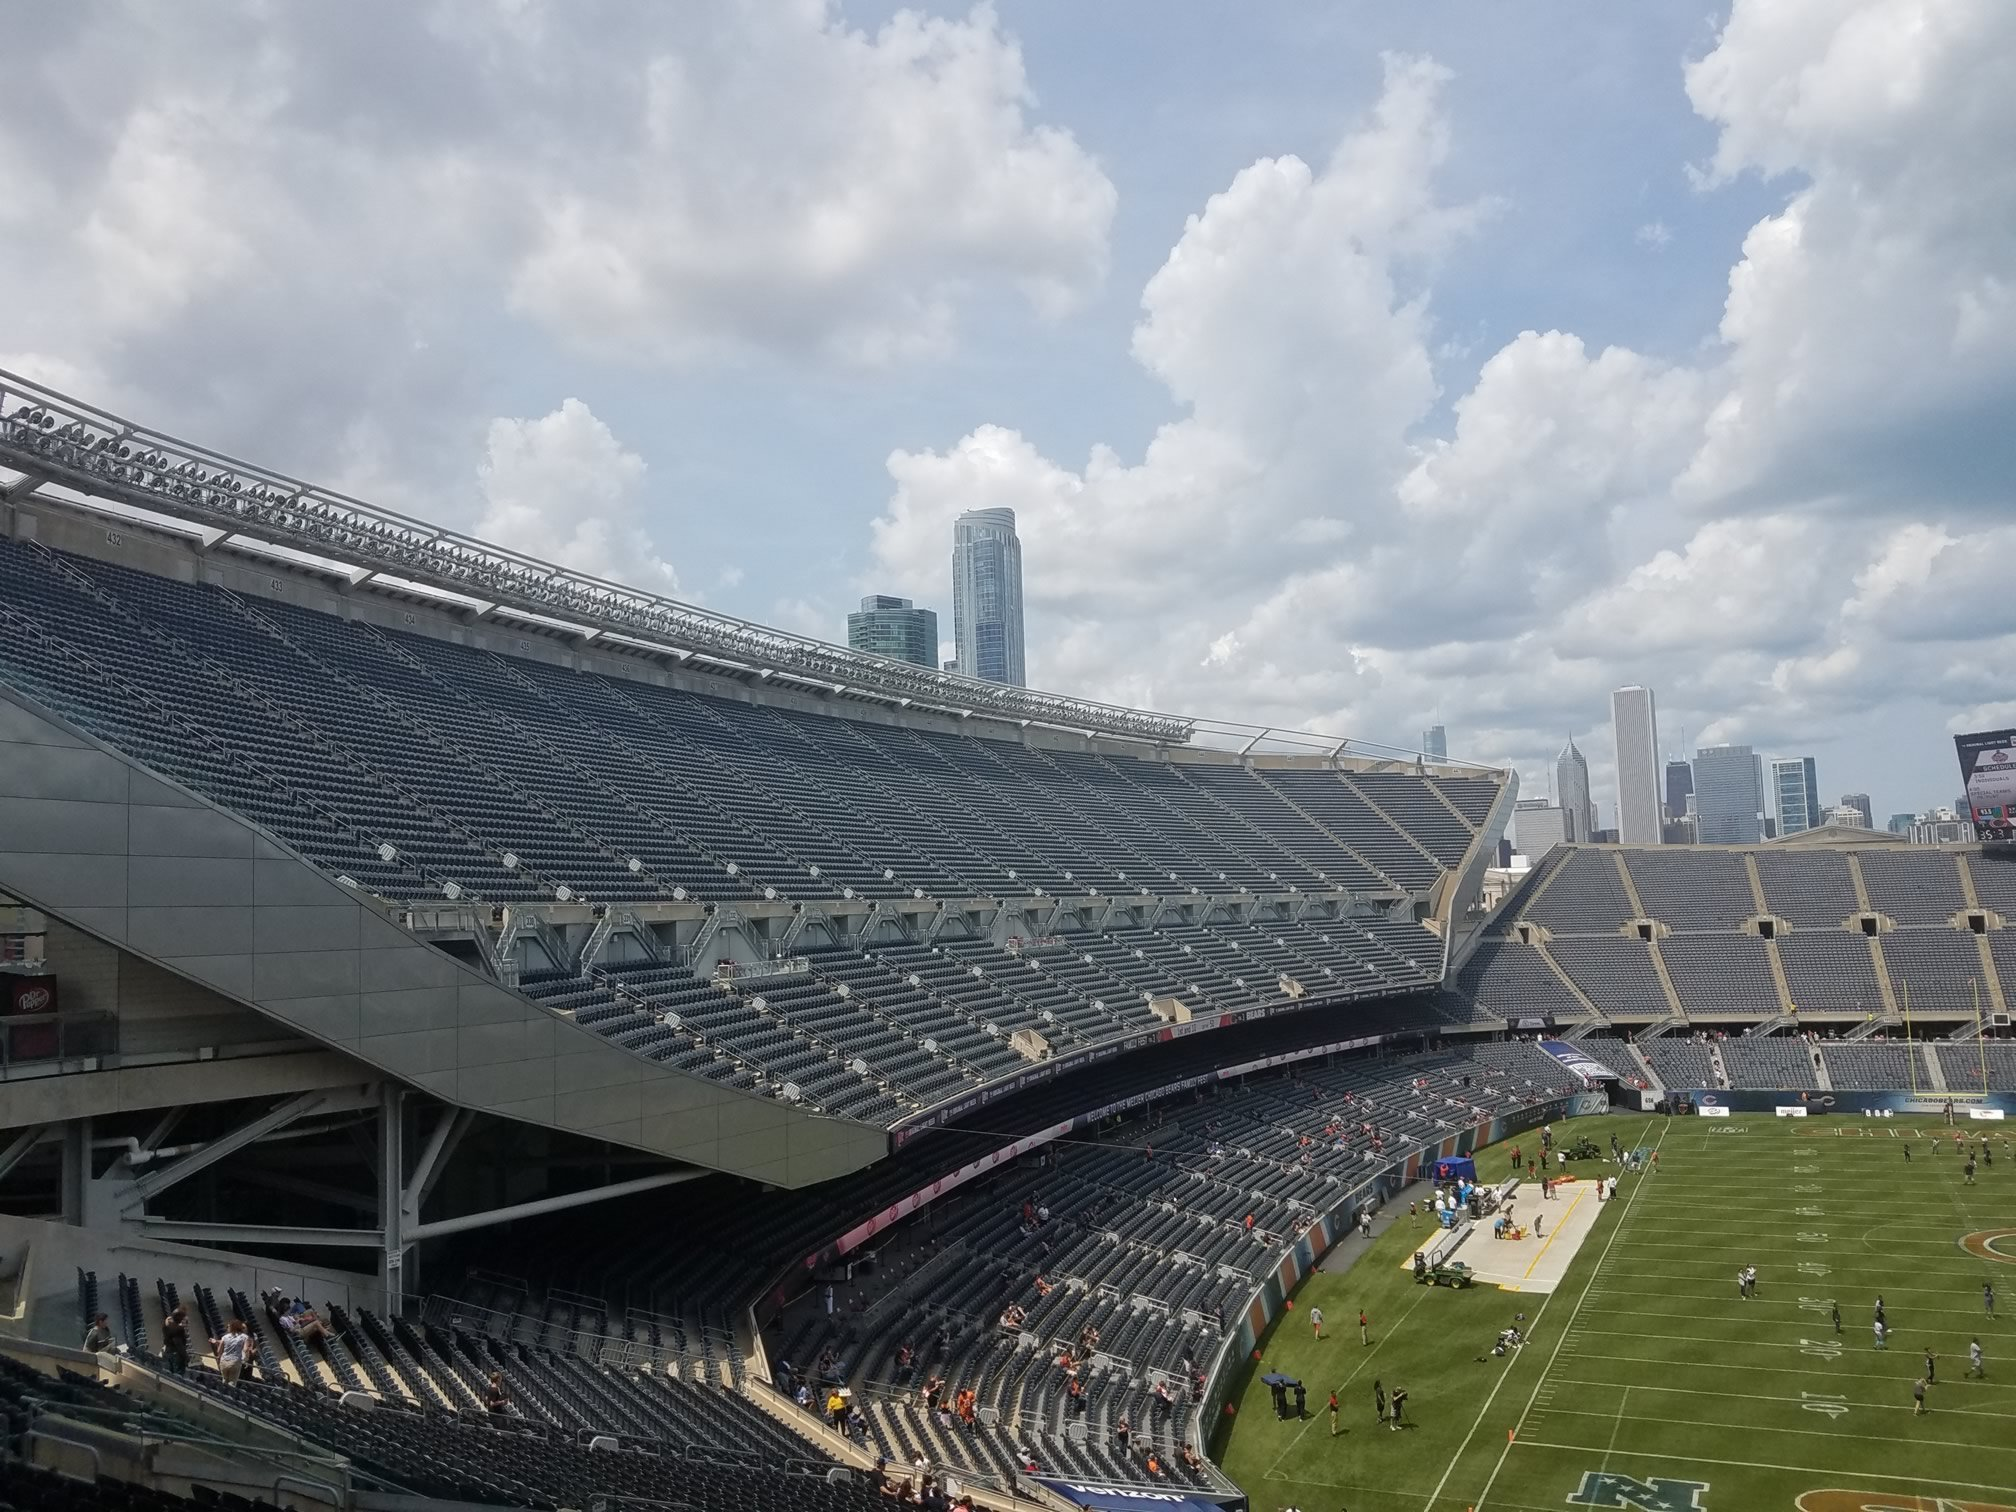 west stands at Soldier Field